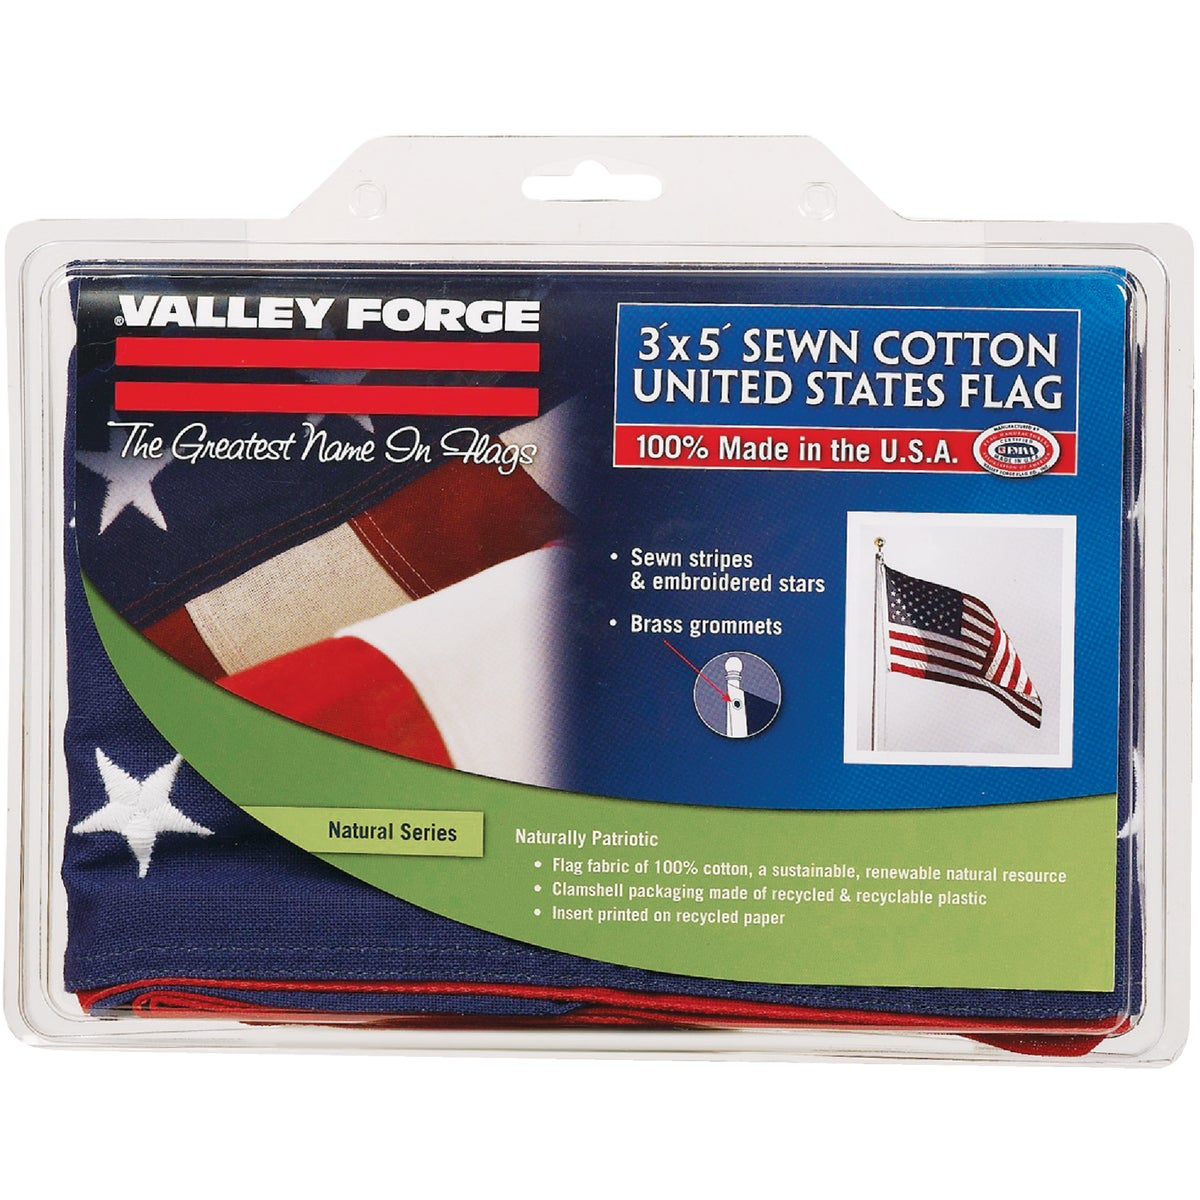 3X5 COTTON USA FLAG - USB3 by Valley Forge Flag